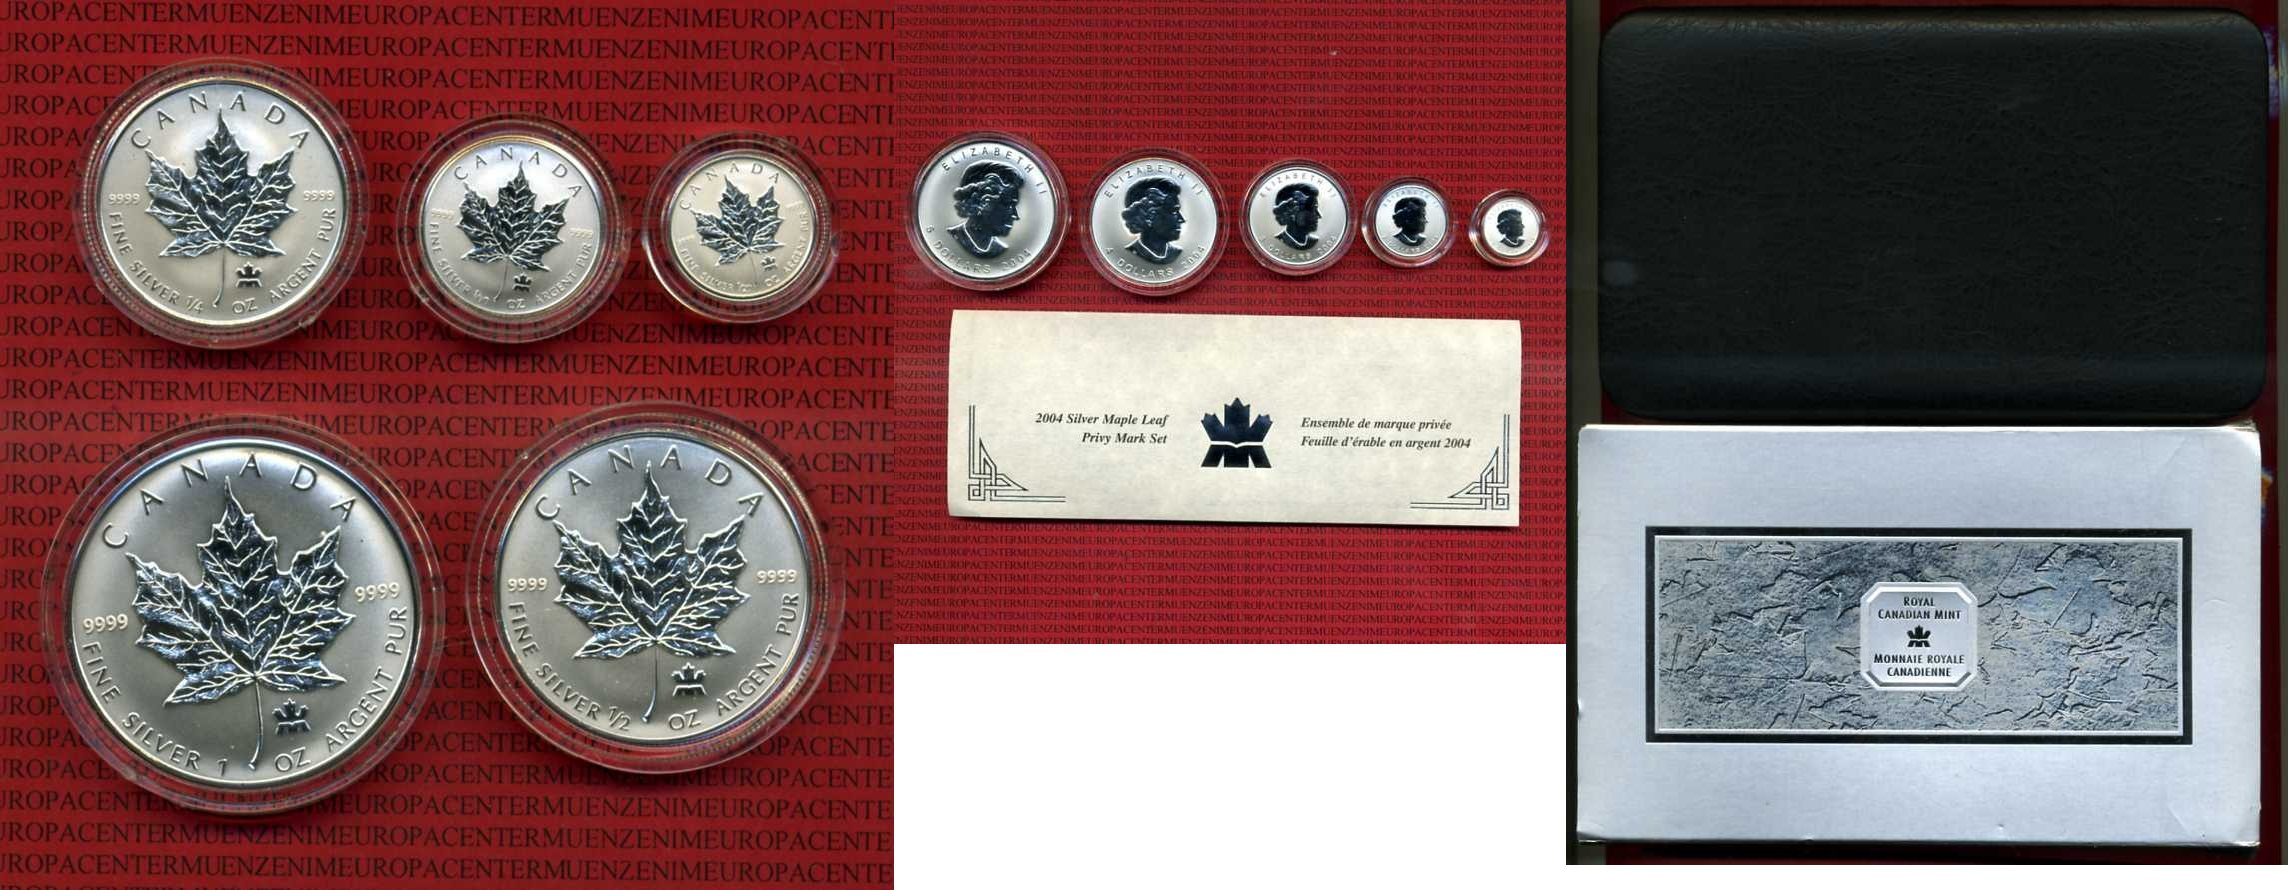 Kanada, Canada Kanada Privy Mark Set 2001, 5, 4, 3, 2 1 Dollar Silber BU  1/20-1 Unze Maple Leaf Pryvy mark 2004 Stempelglanz BU mit Box und Zertifikat 